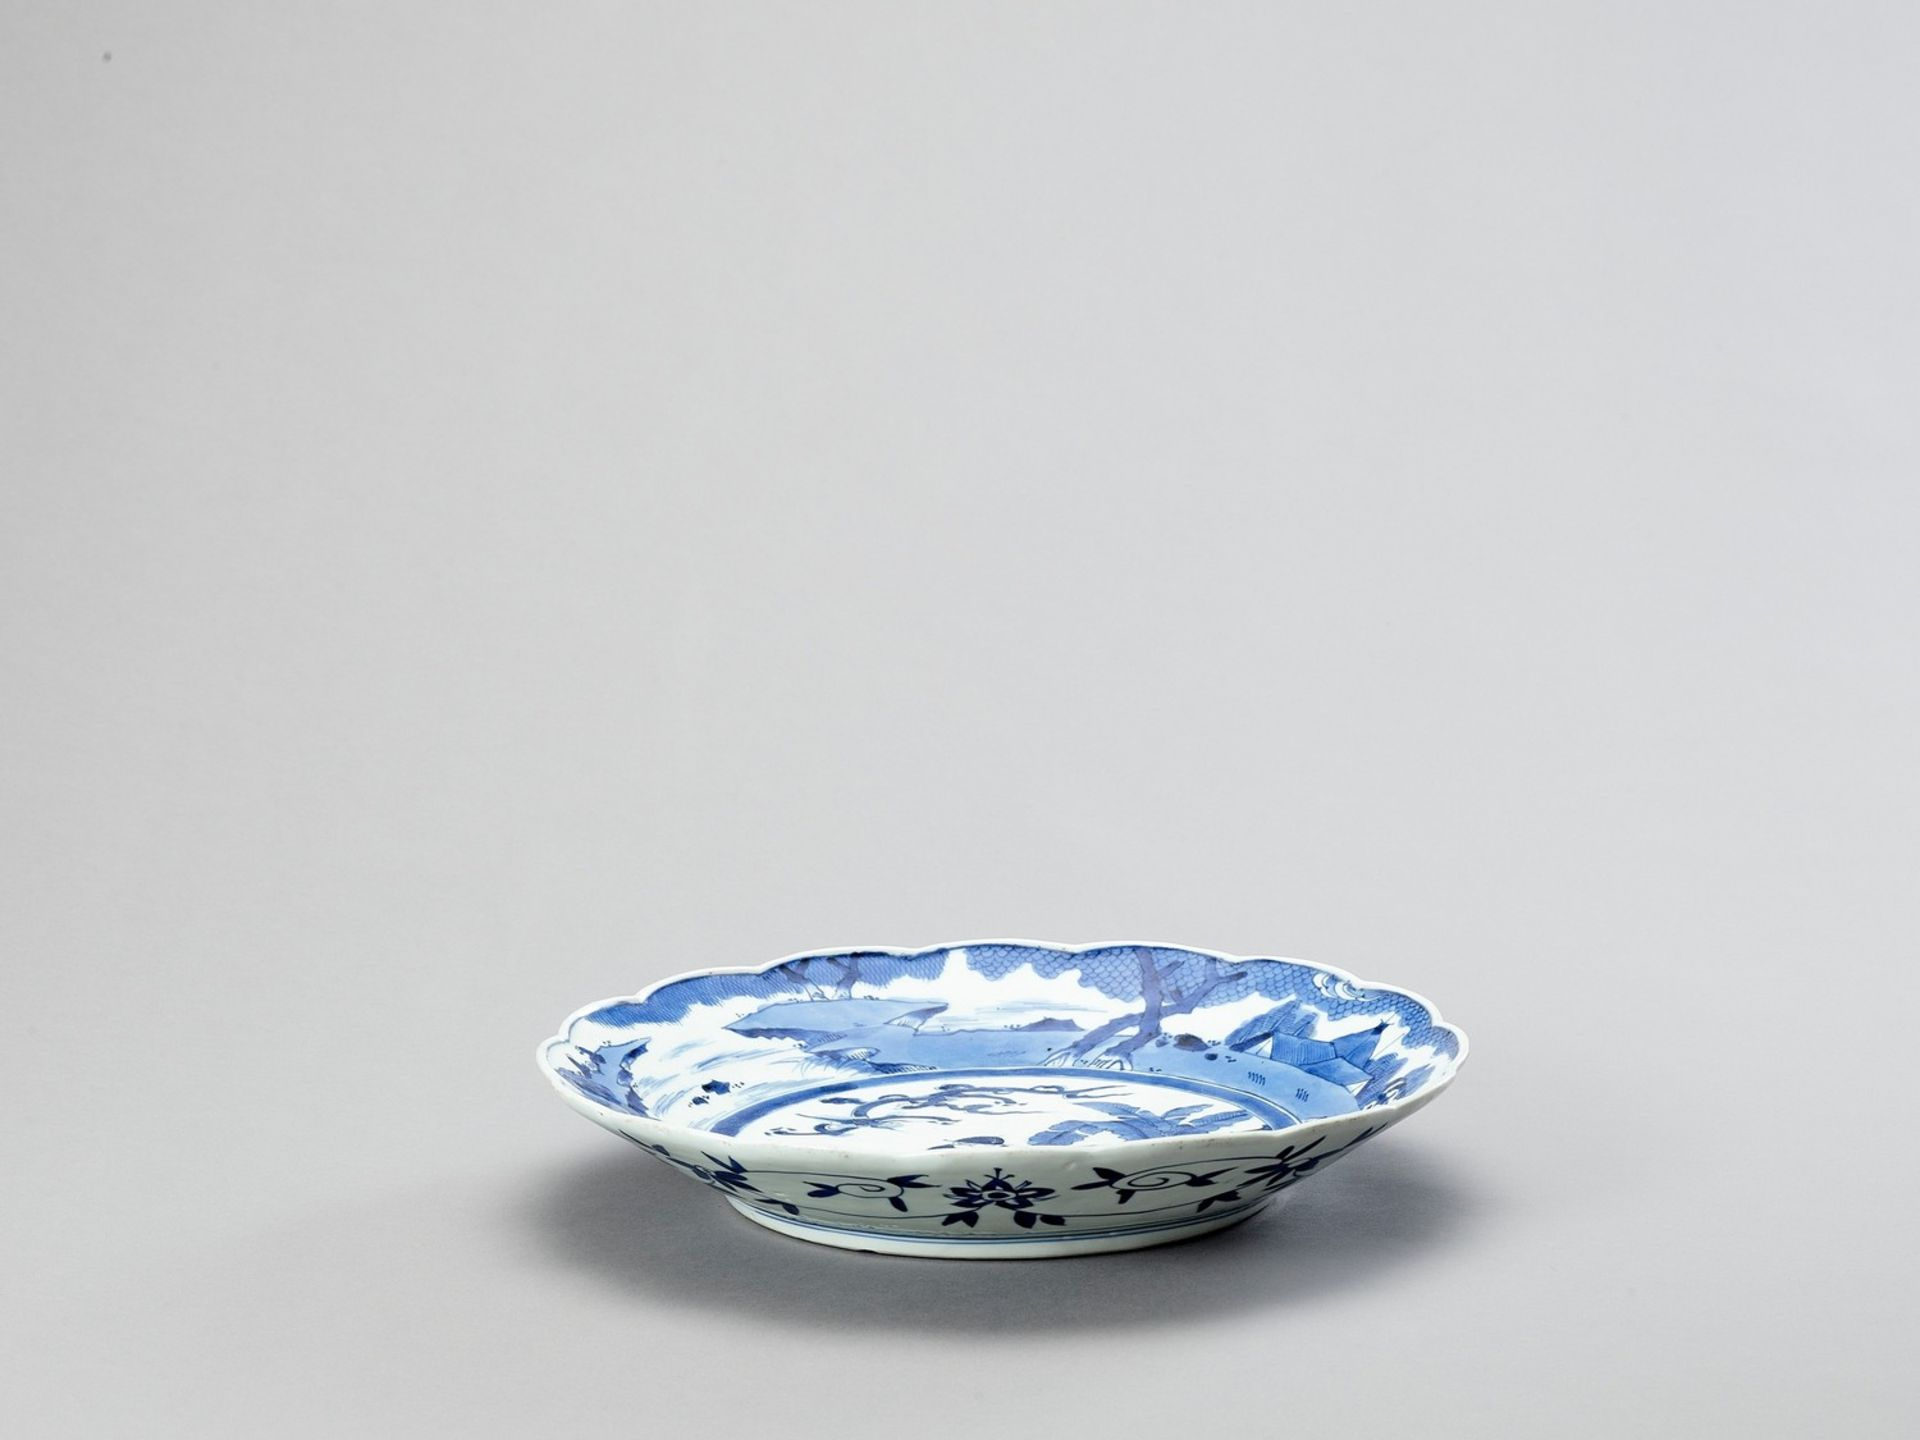 A LOBED ARITA PORCELAIN CHARGER - Image 4 of 4